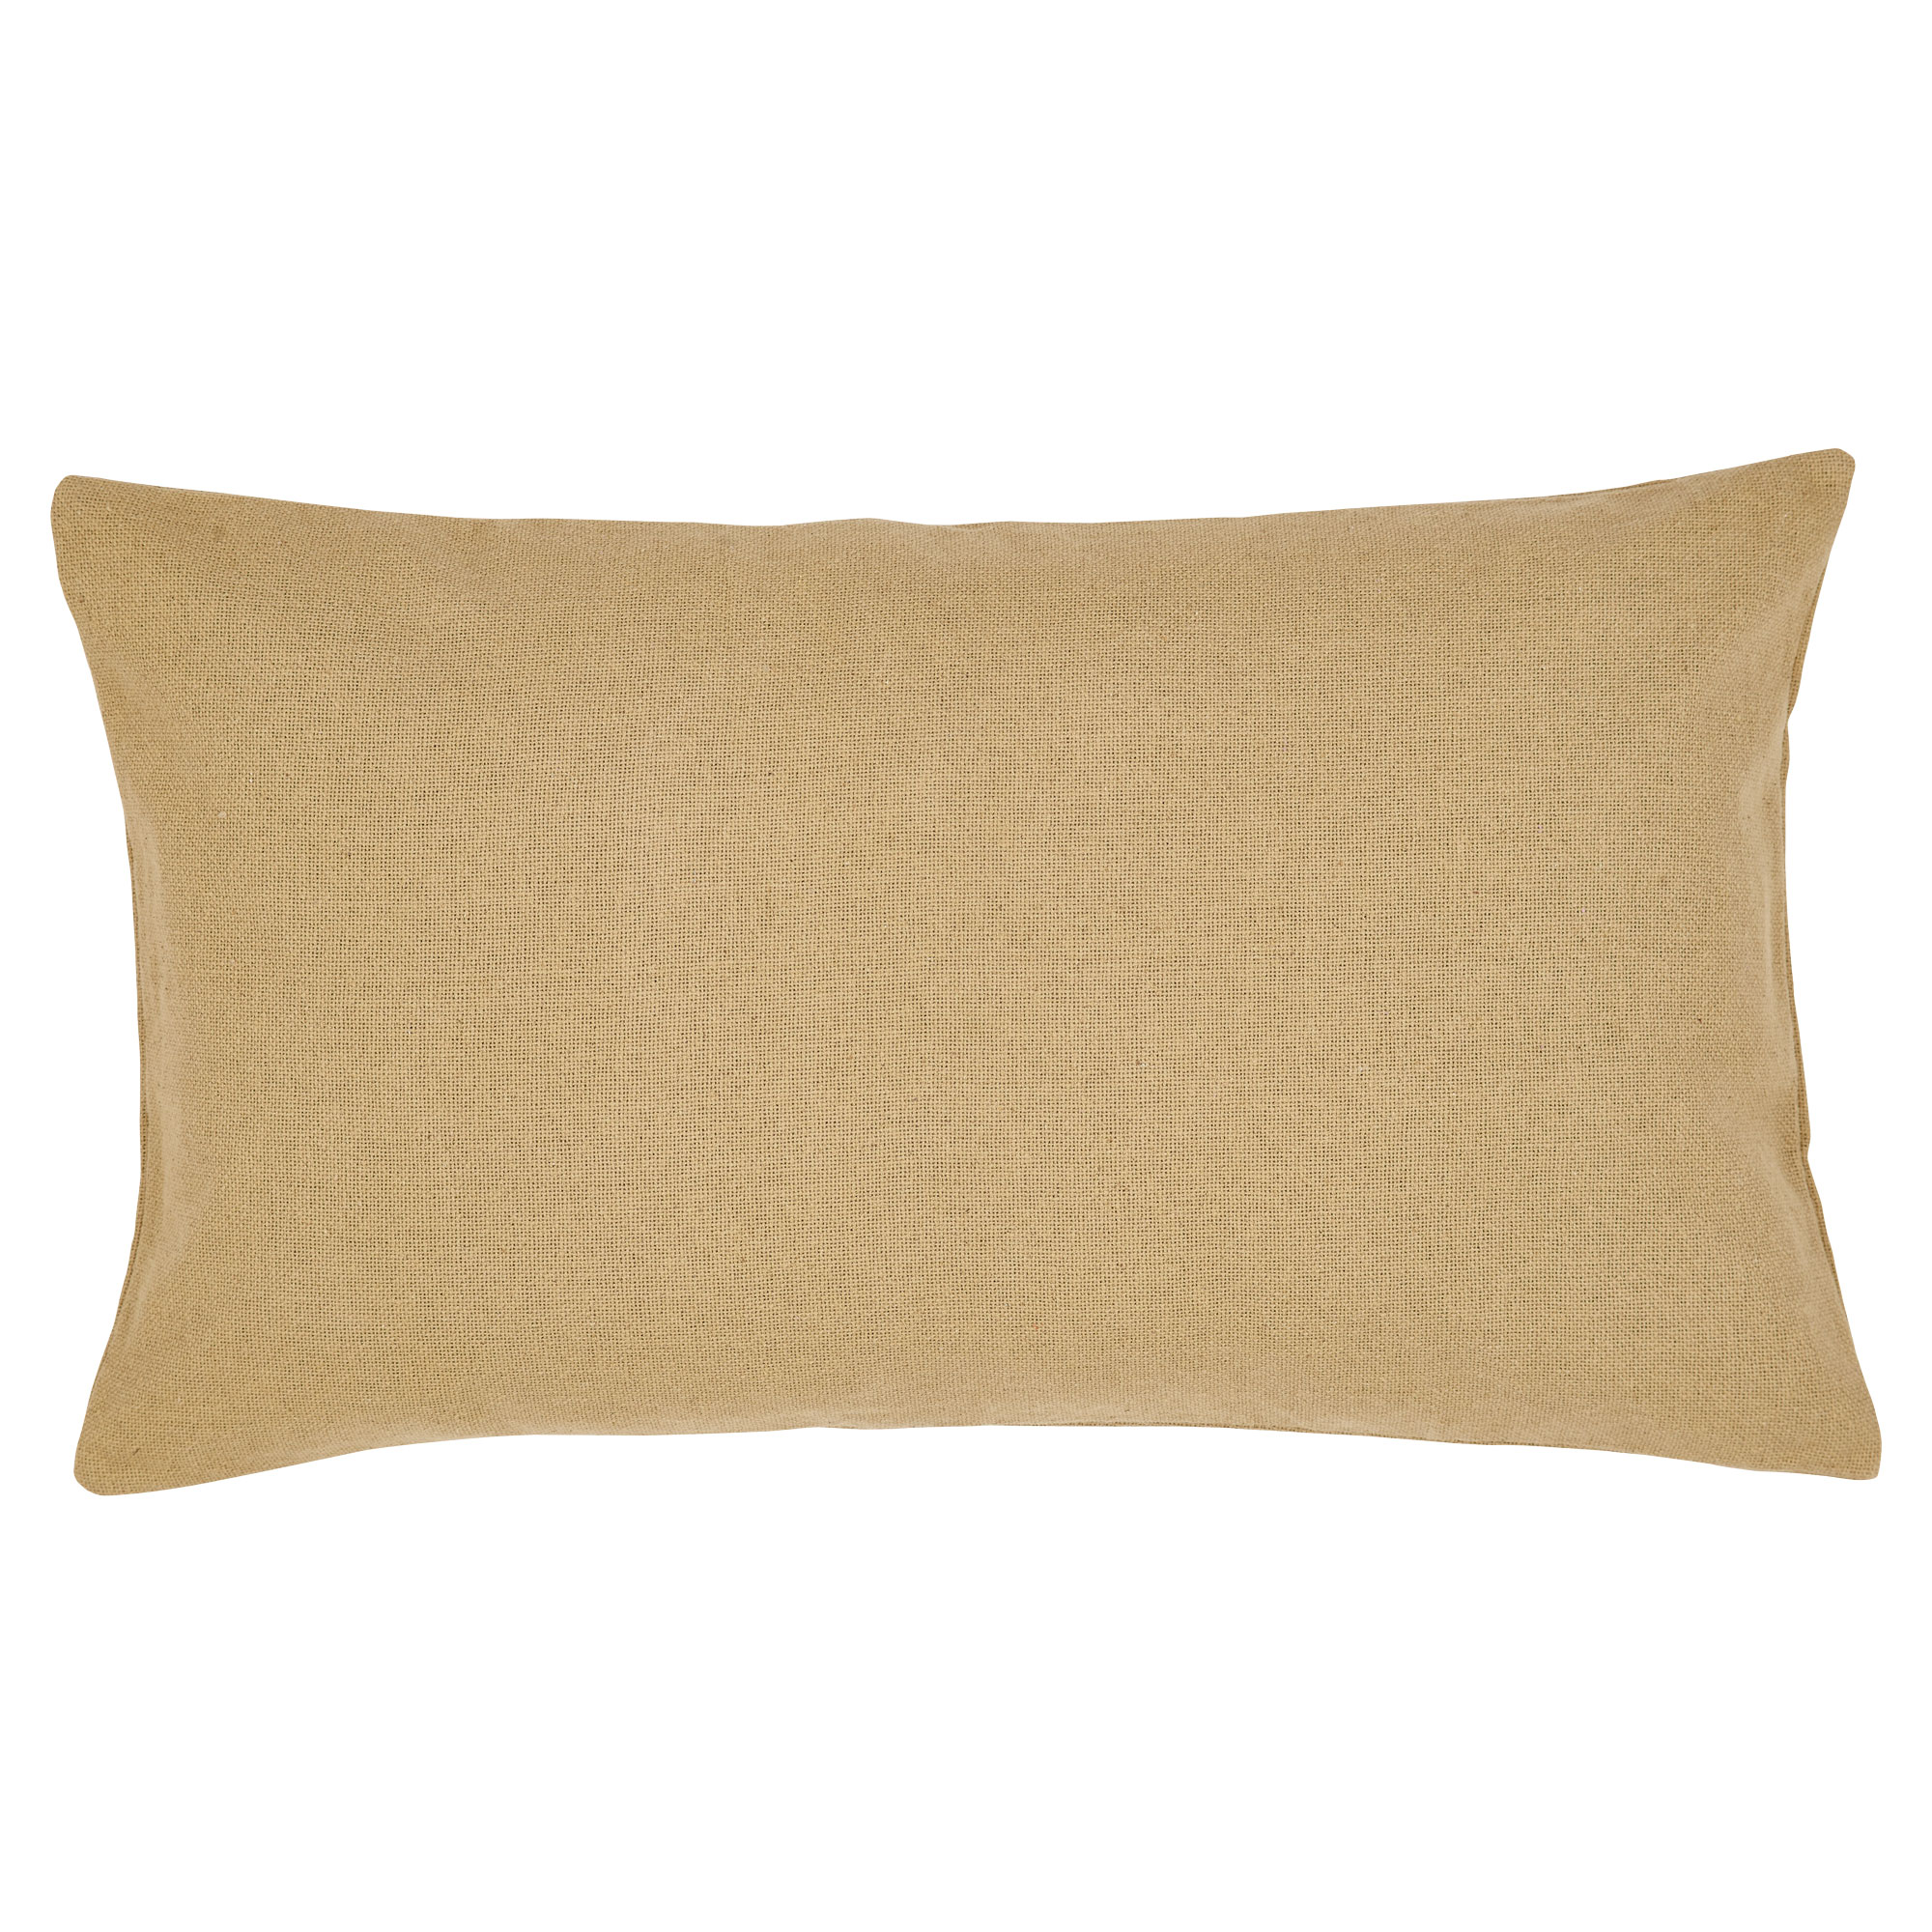 Burlap Solid Country King Queen Pillow Sham